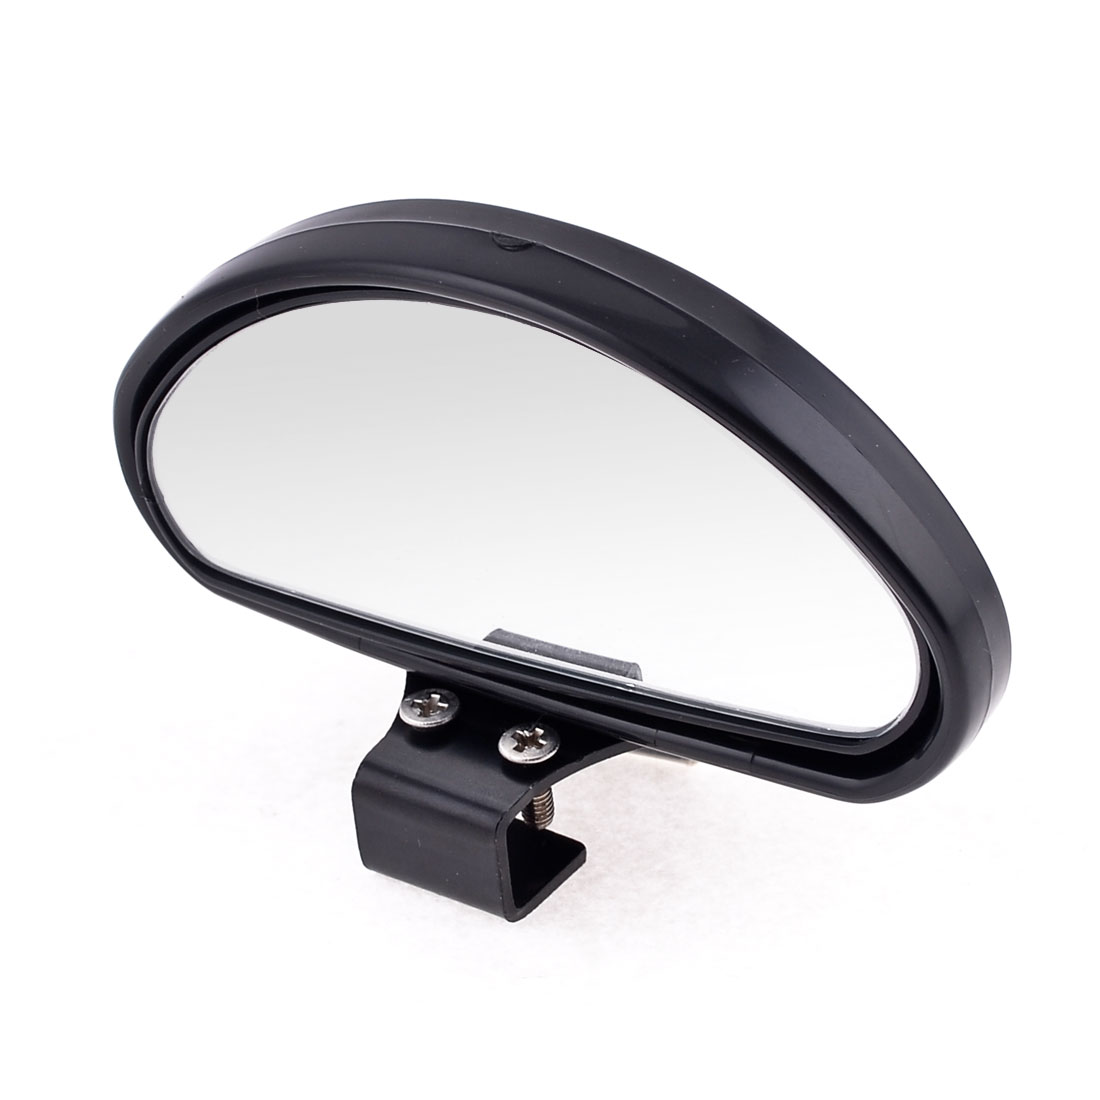 Oval Shape Black Plastic Glass Vehicle Rear View Blind Spot Mirror for Auto Car